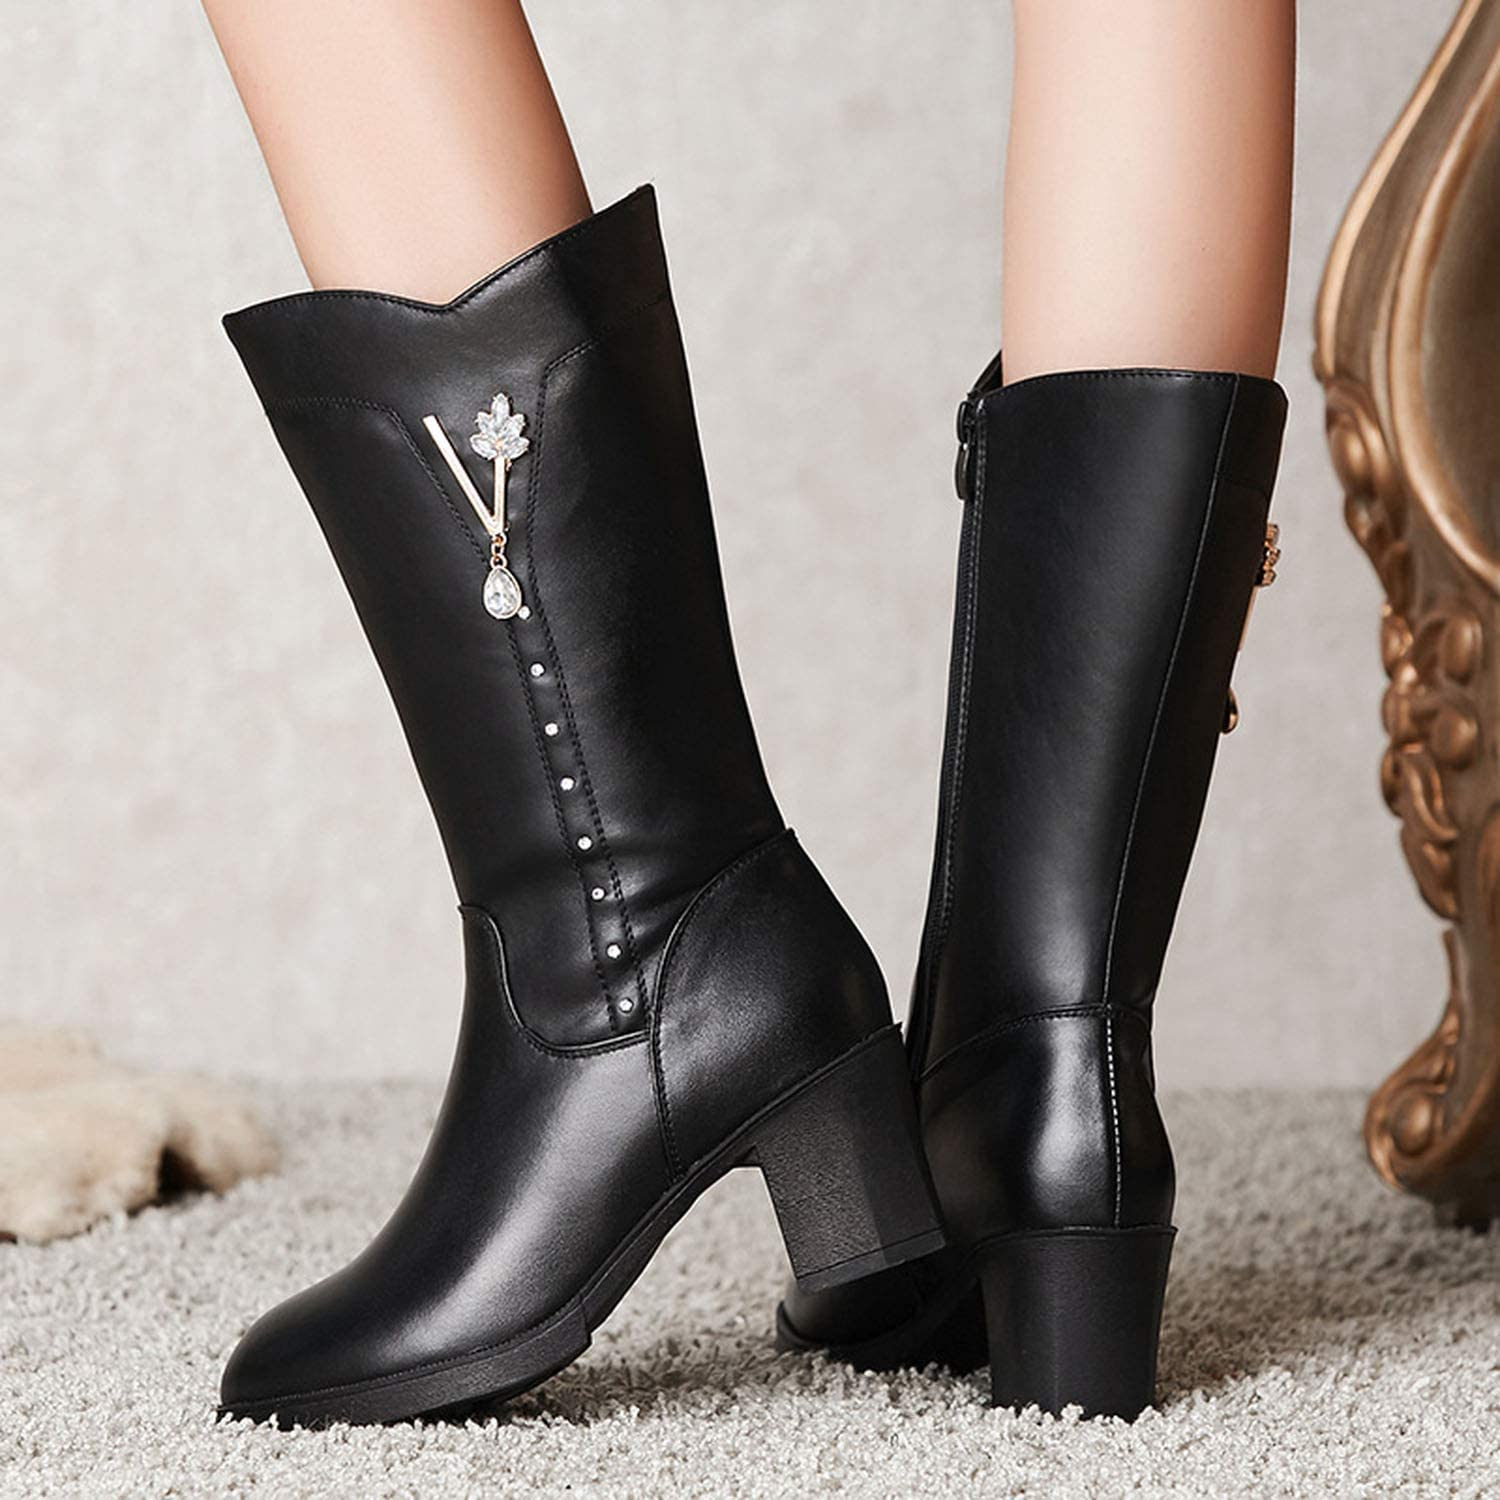 Together to create a miracle 2018 Rhinestone Winter Boots Women Shoes Elegant Black Cow Leather Boots,Black Short Plush,5